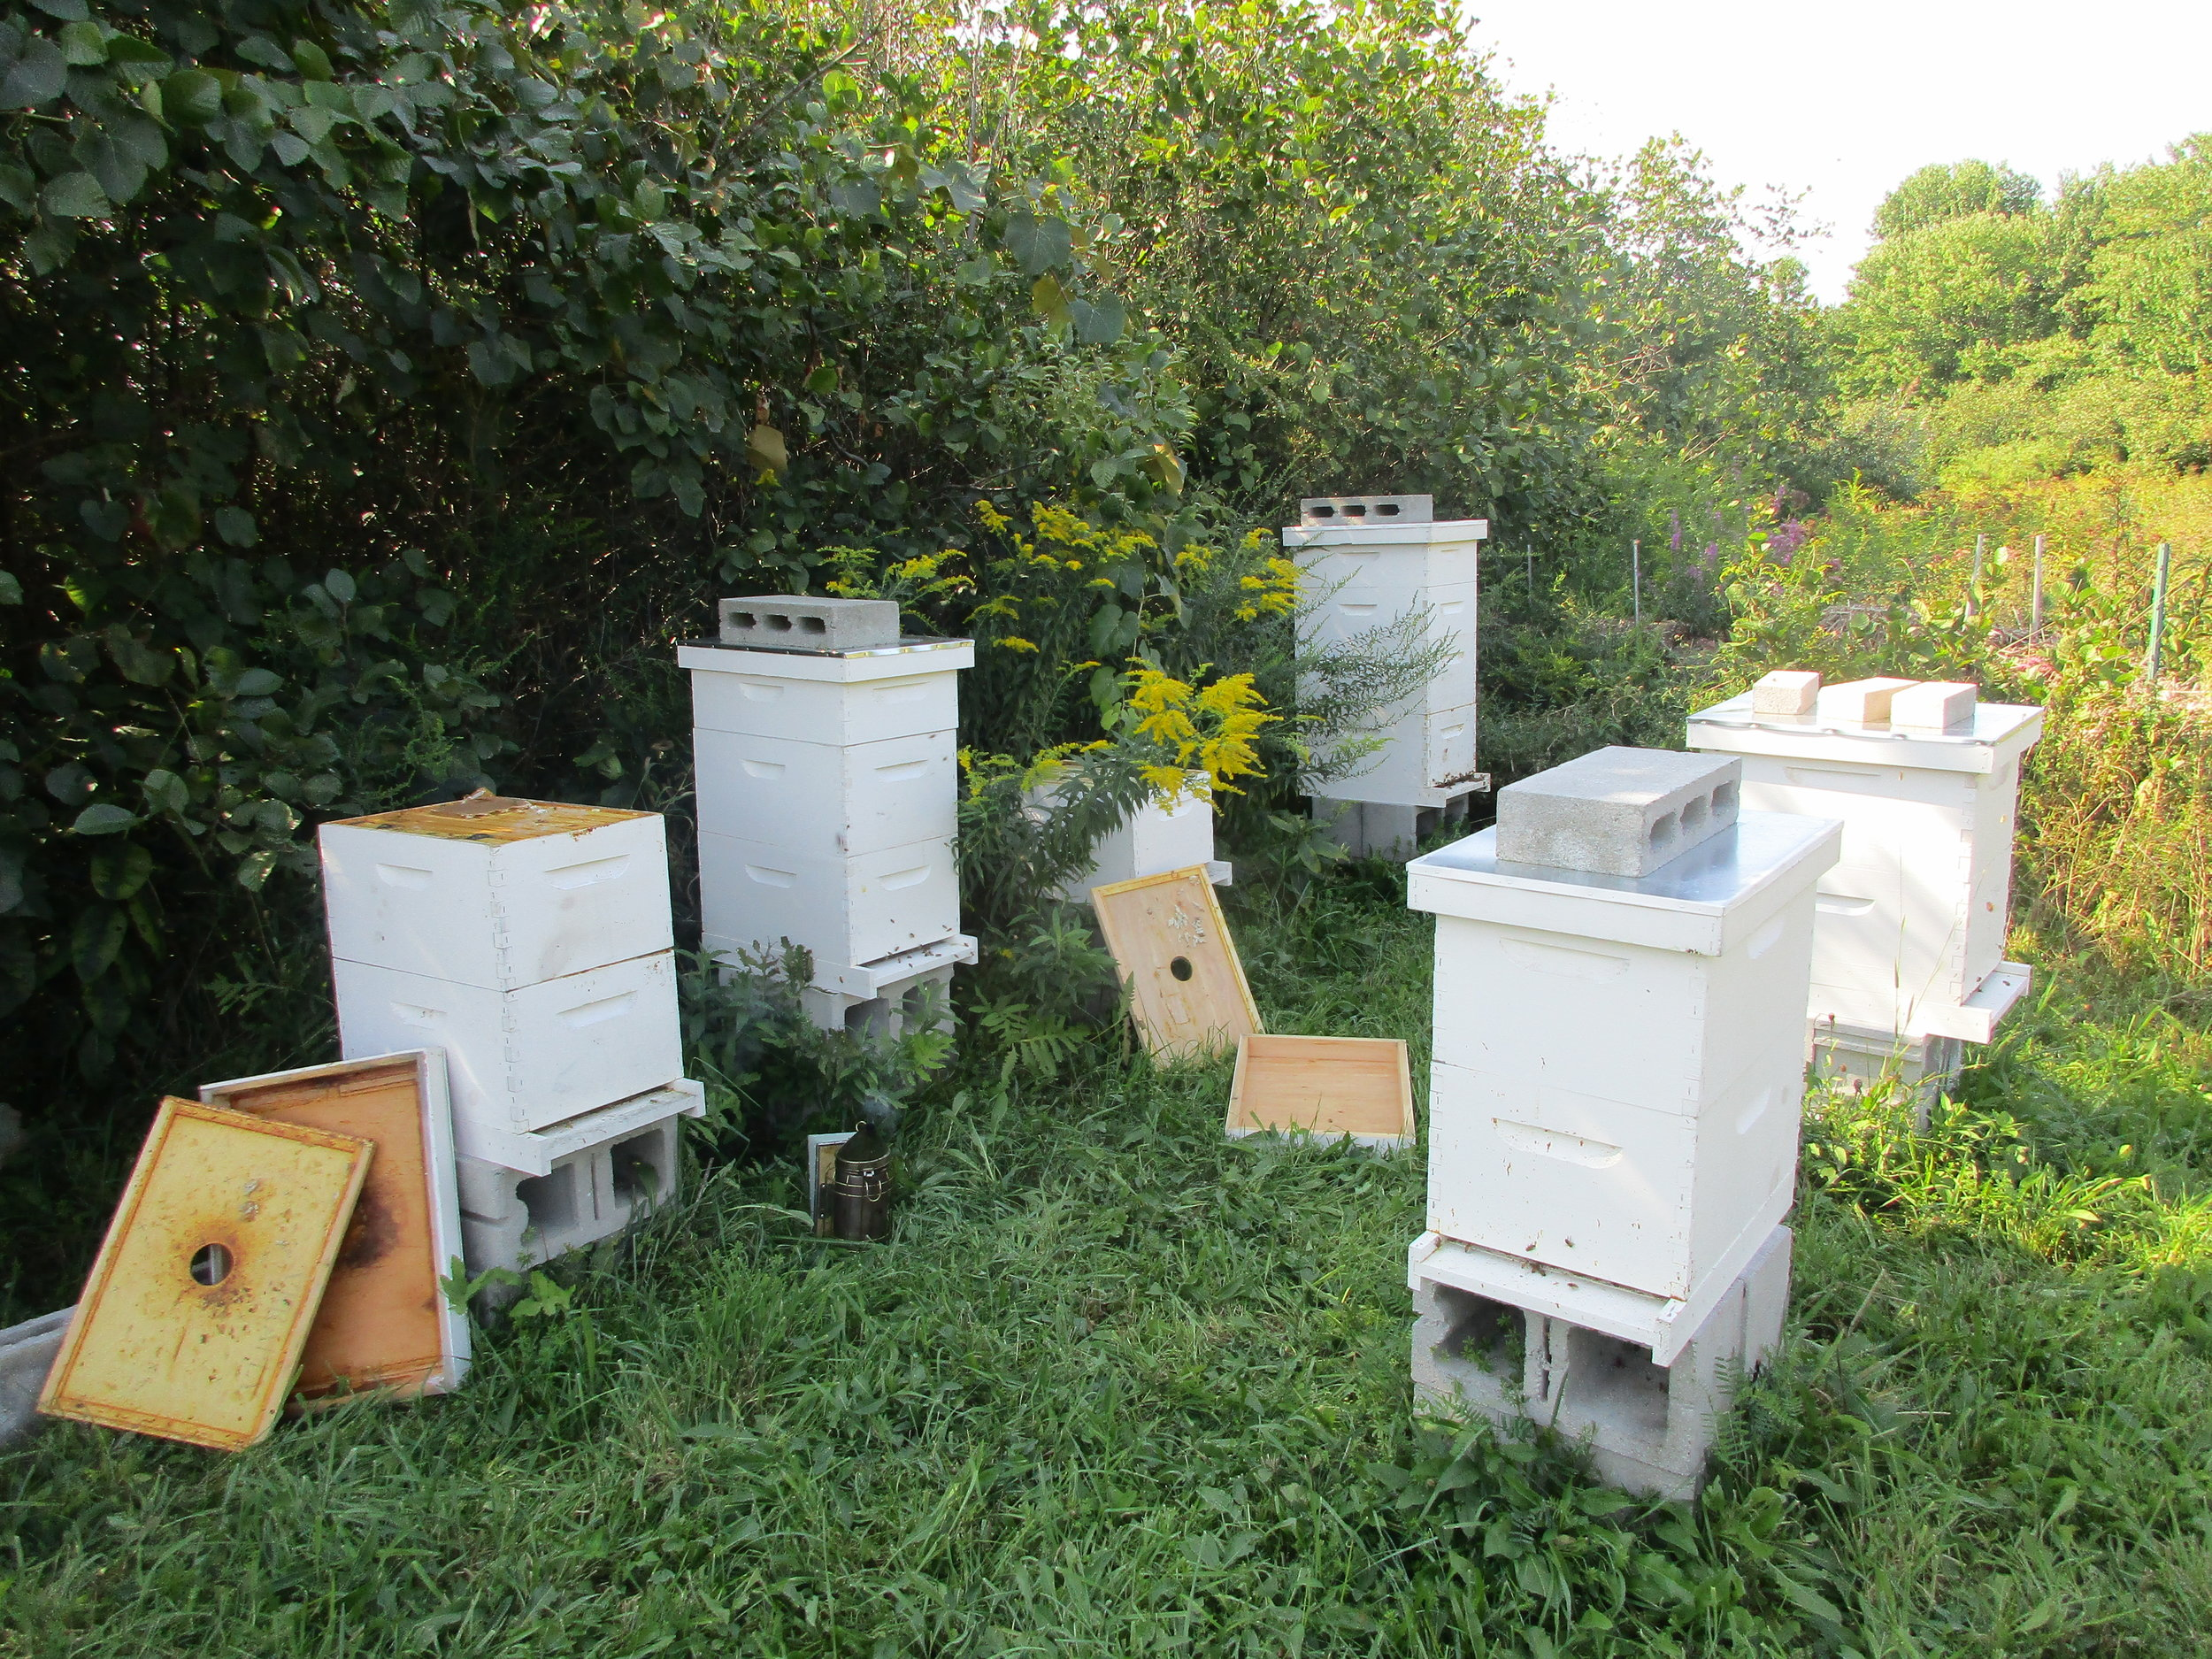 The four hives with lids on and bricks are the only hives left. The ones with lids resting up against the side are empty of bees.